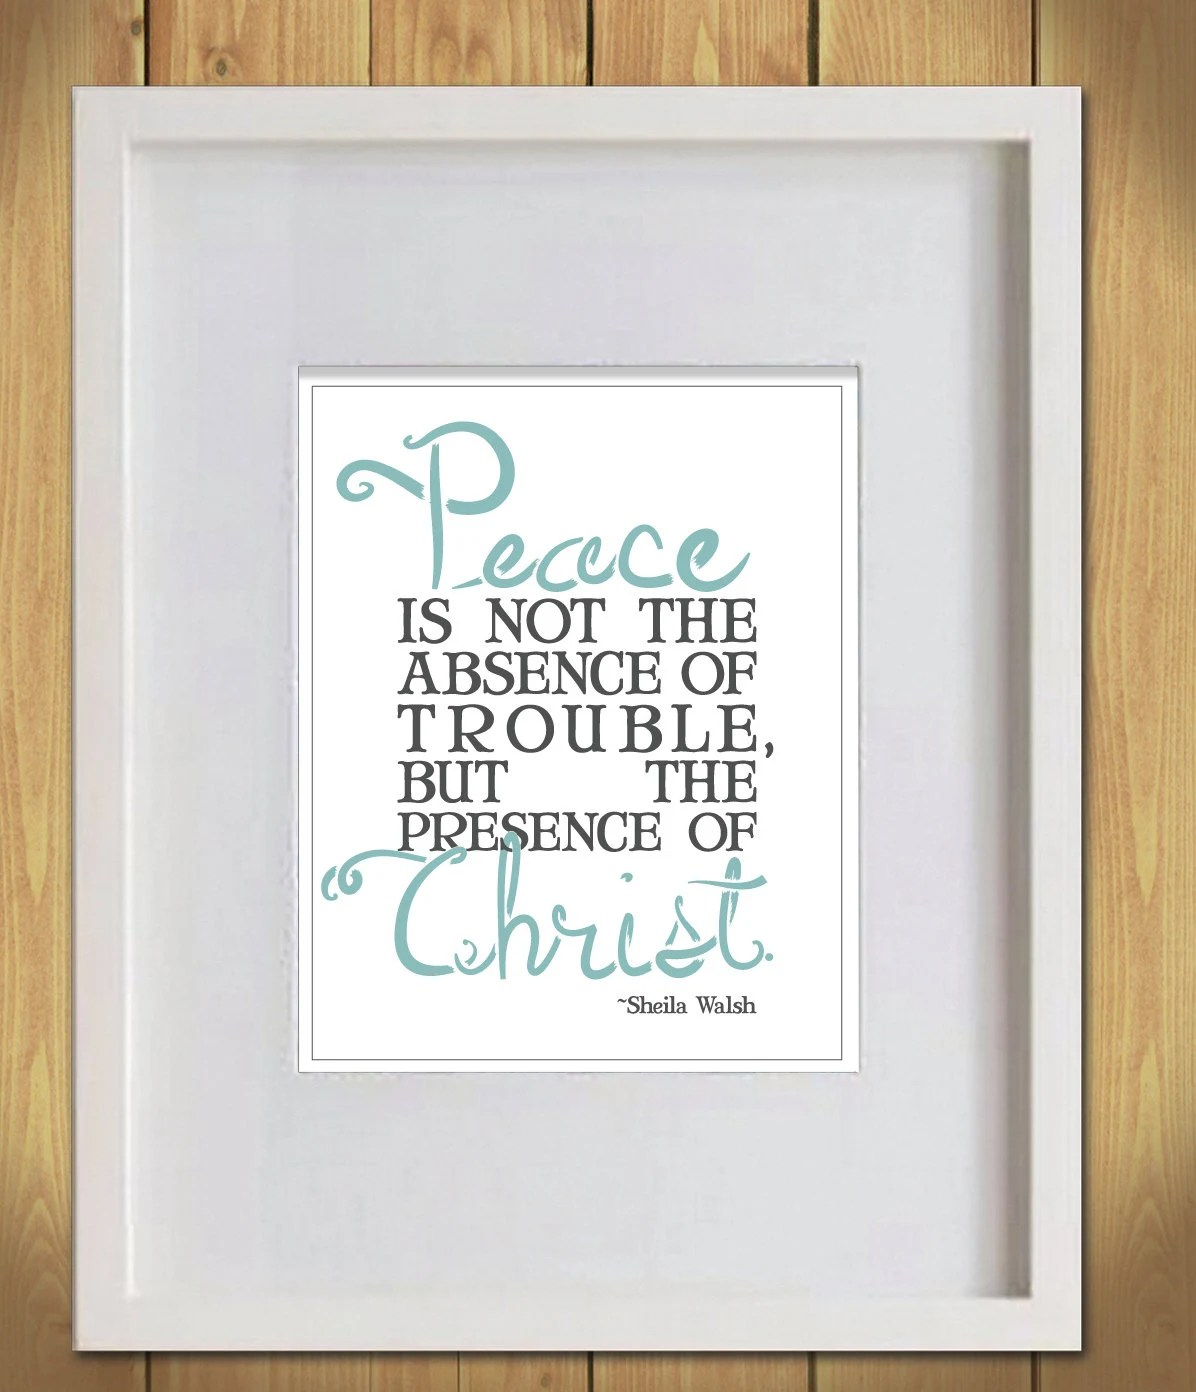 Inspirational Quote-Sheila Walsh Quote-Christian Inspiration-Ready to Frame-8x10 Print